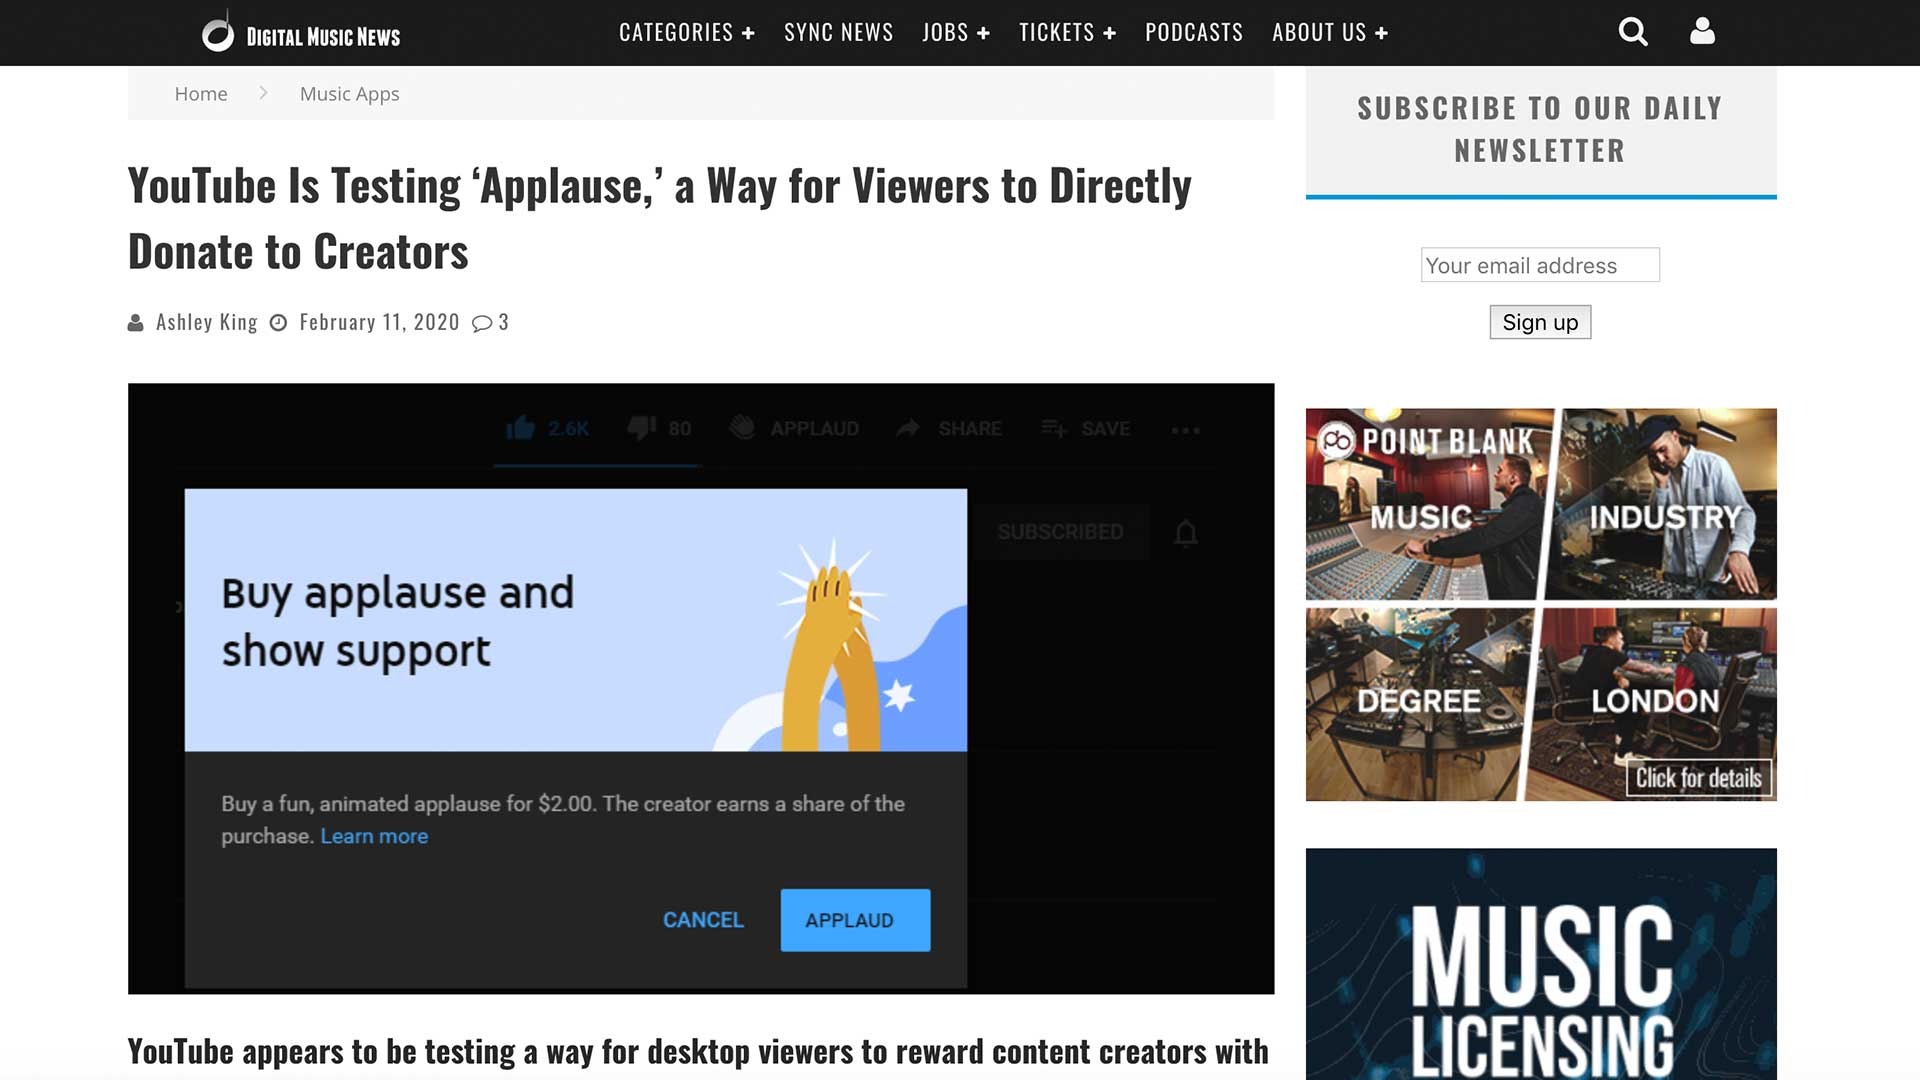 Fairness Rocks News YouTube Is Testing 'Applause,' a Way for Viewers to Directly Donate to Creators